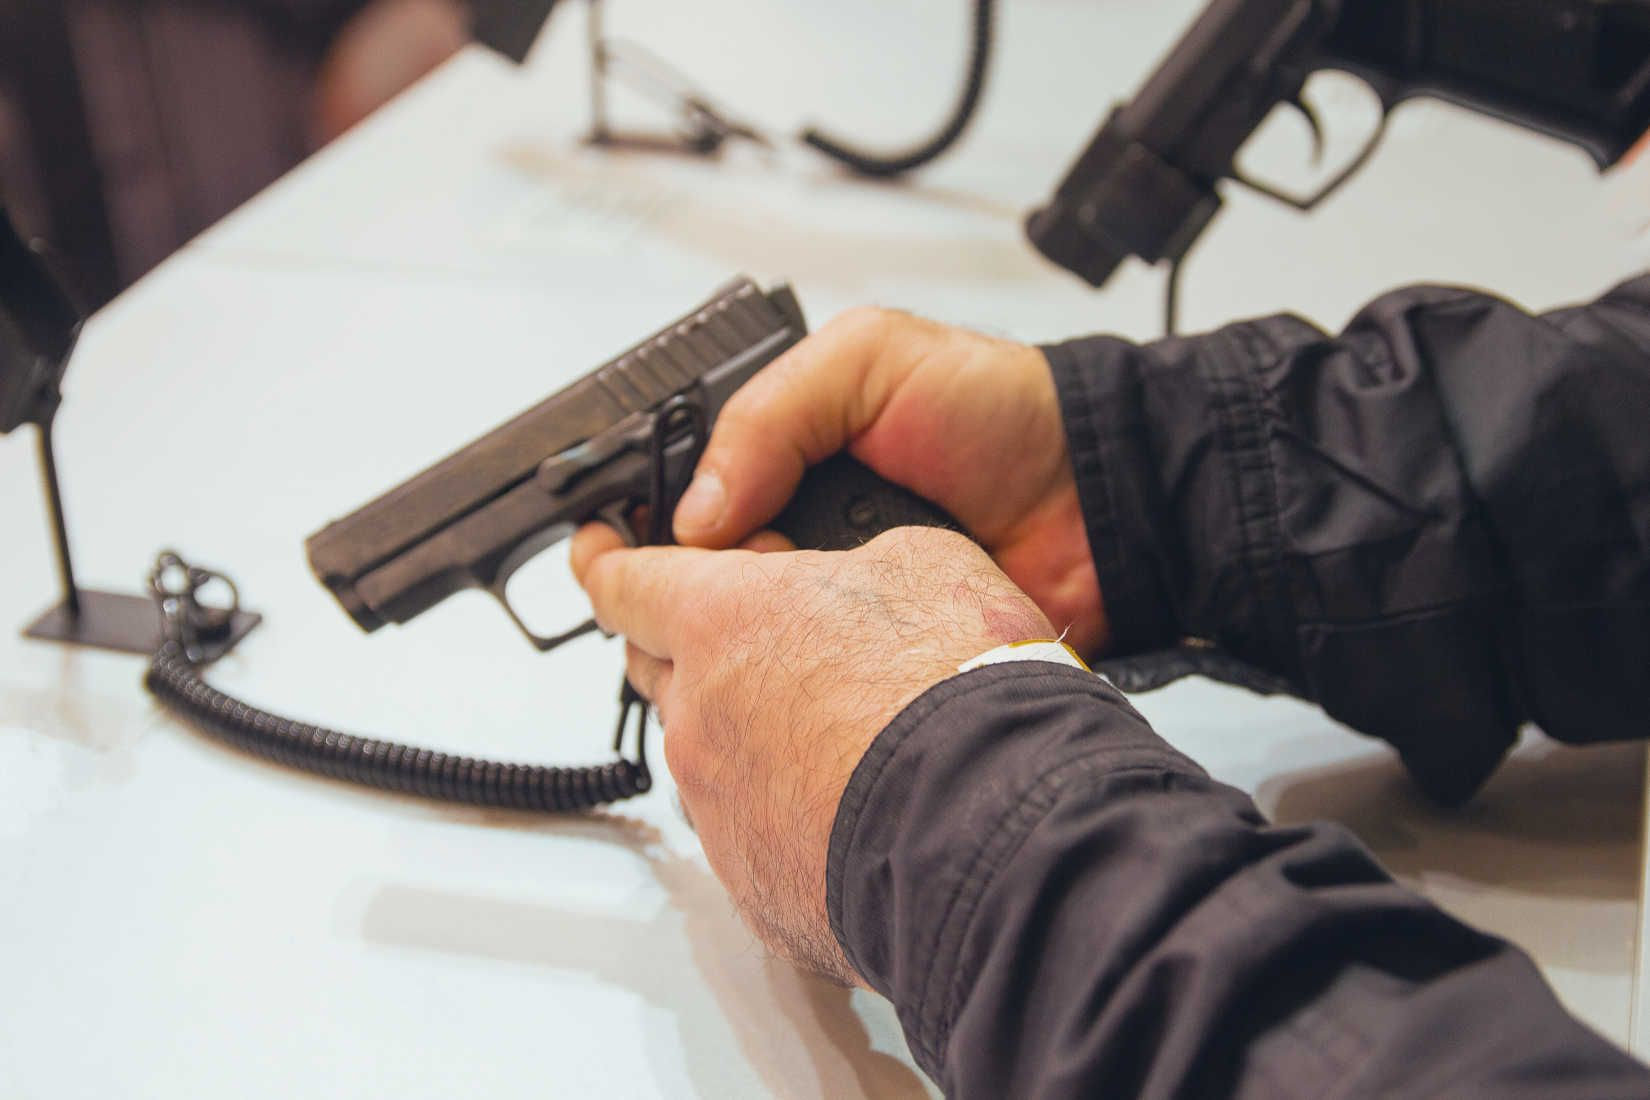 New Jersey AG Launches Punitive Campaign Against Out-Of-State Gun Sellers